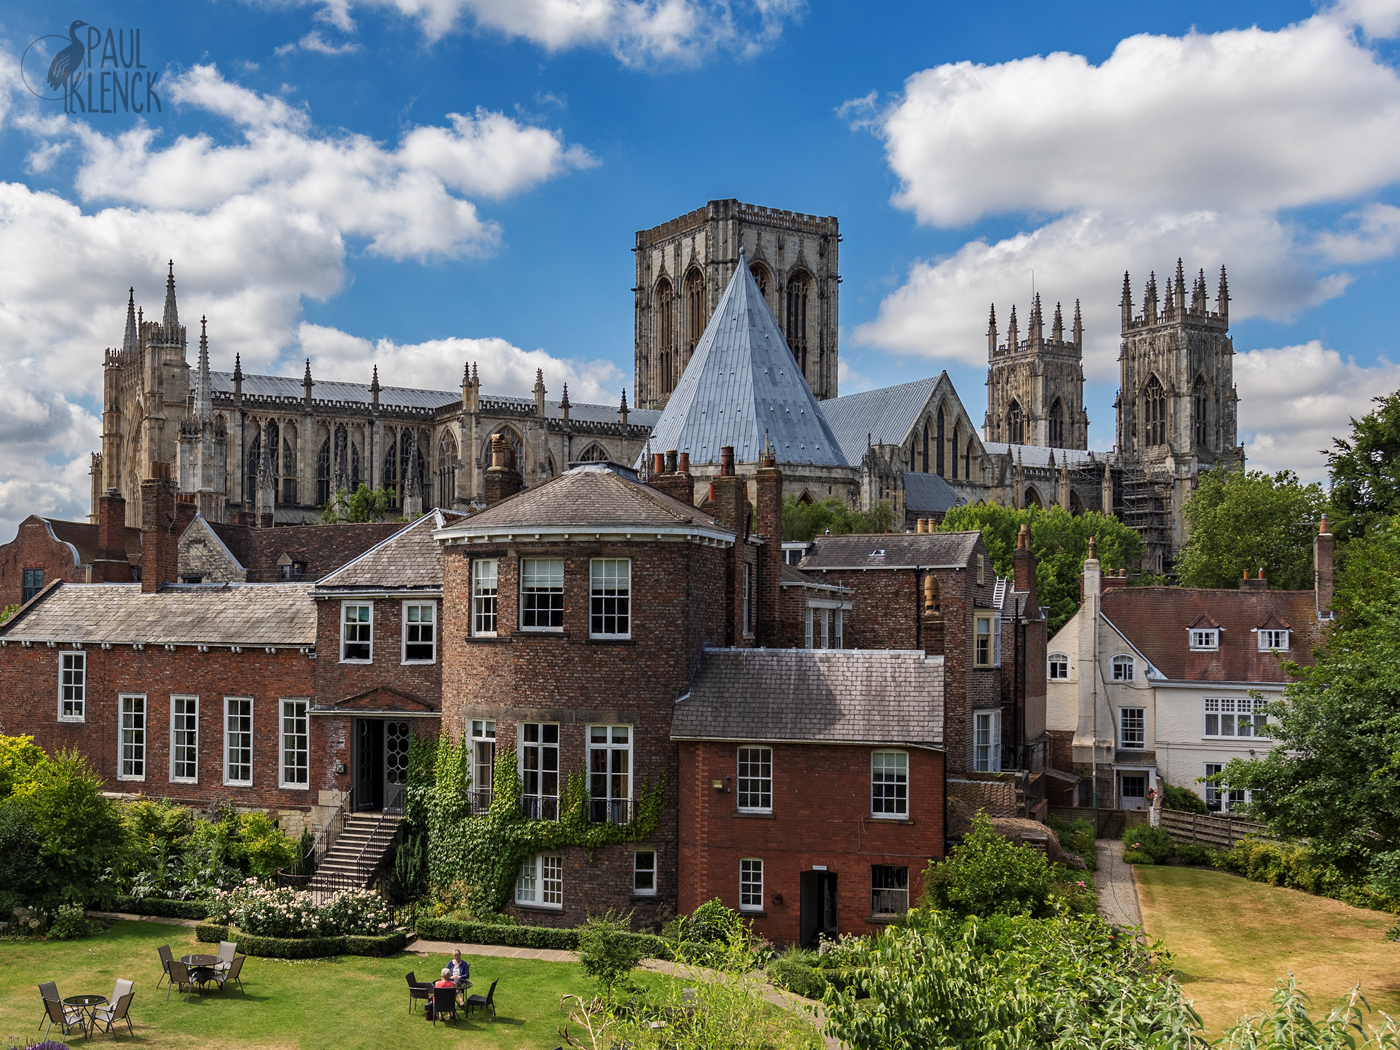 York Minster as viewed from the York City wall